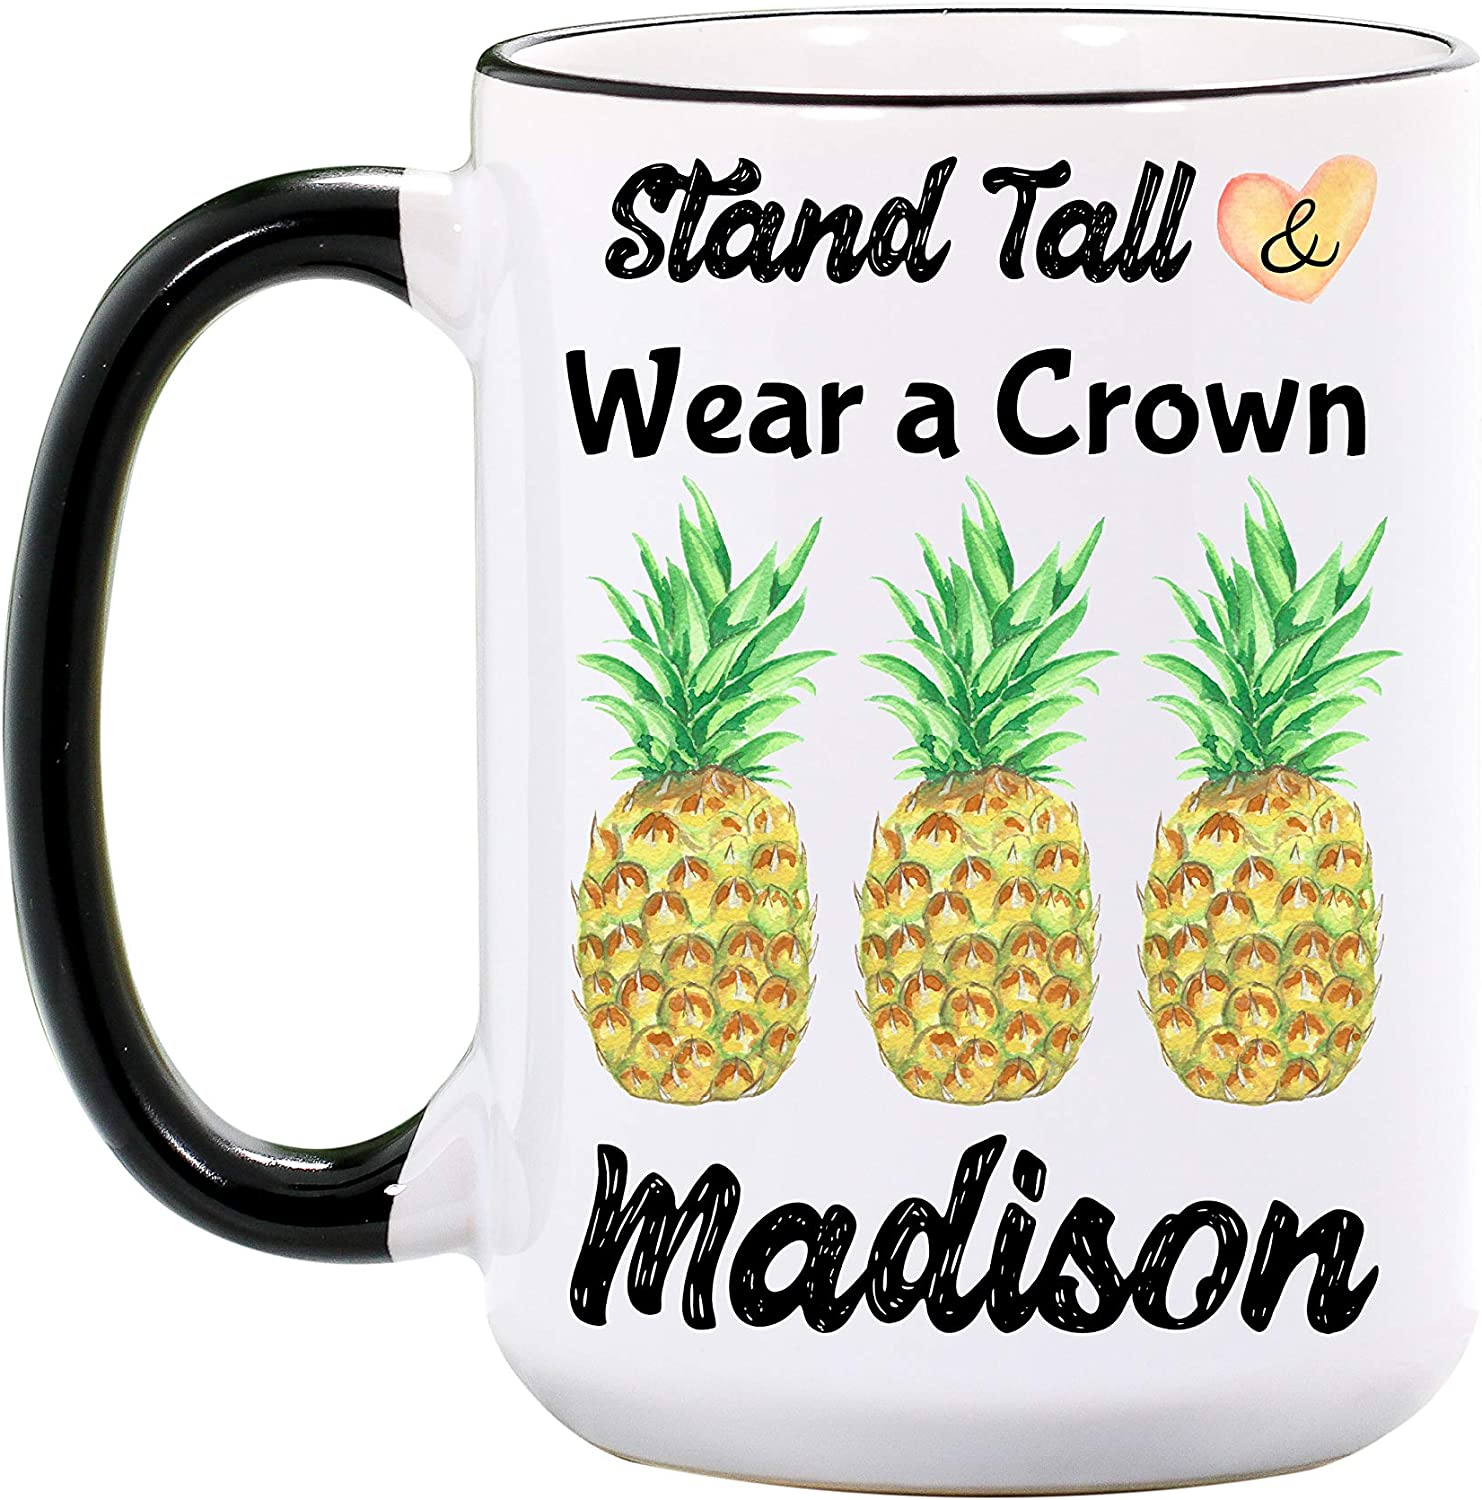 Pineapple Mug - Personalized Large 15 oz or 11 oz Ceramic Cup - Pineapple Gifts for Women - Cute Pineapples Mugs - Fruit Coffee Cups - Dishwasher & Microwave Safe - Made In USA